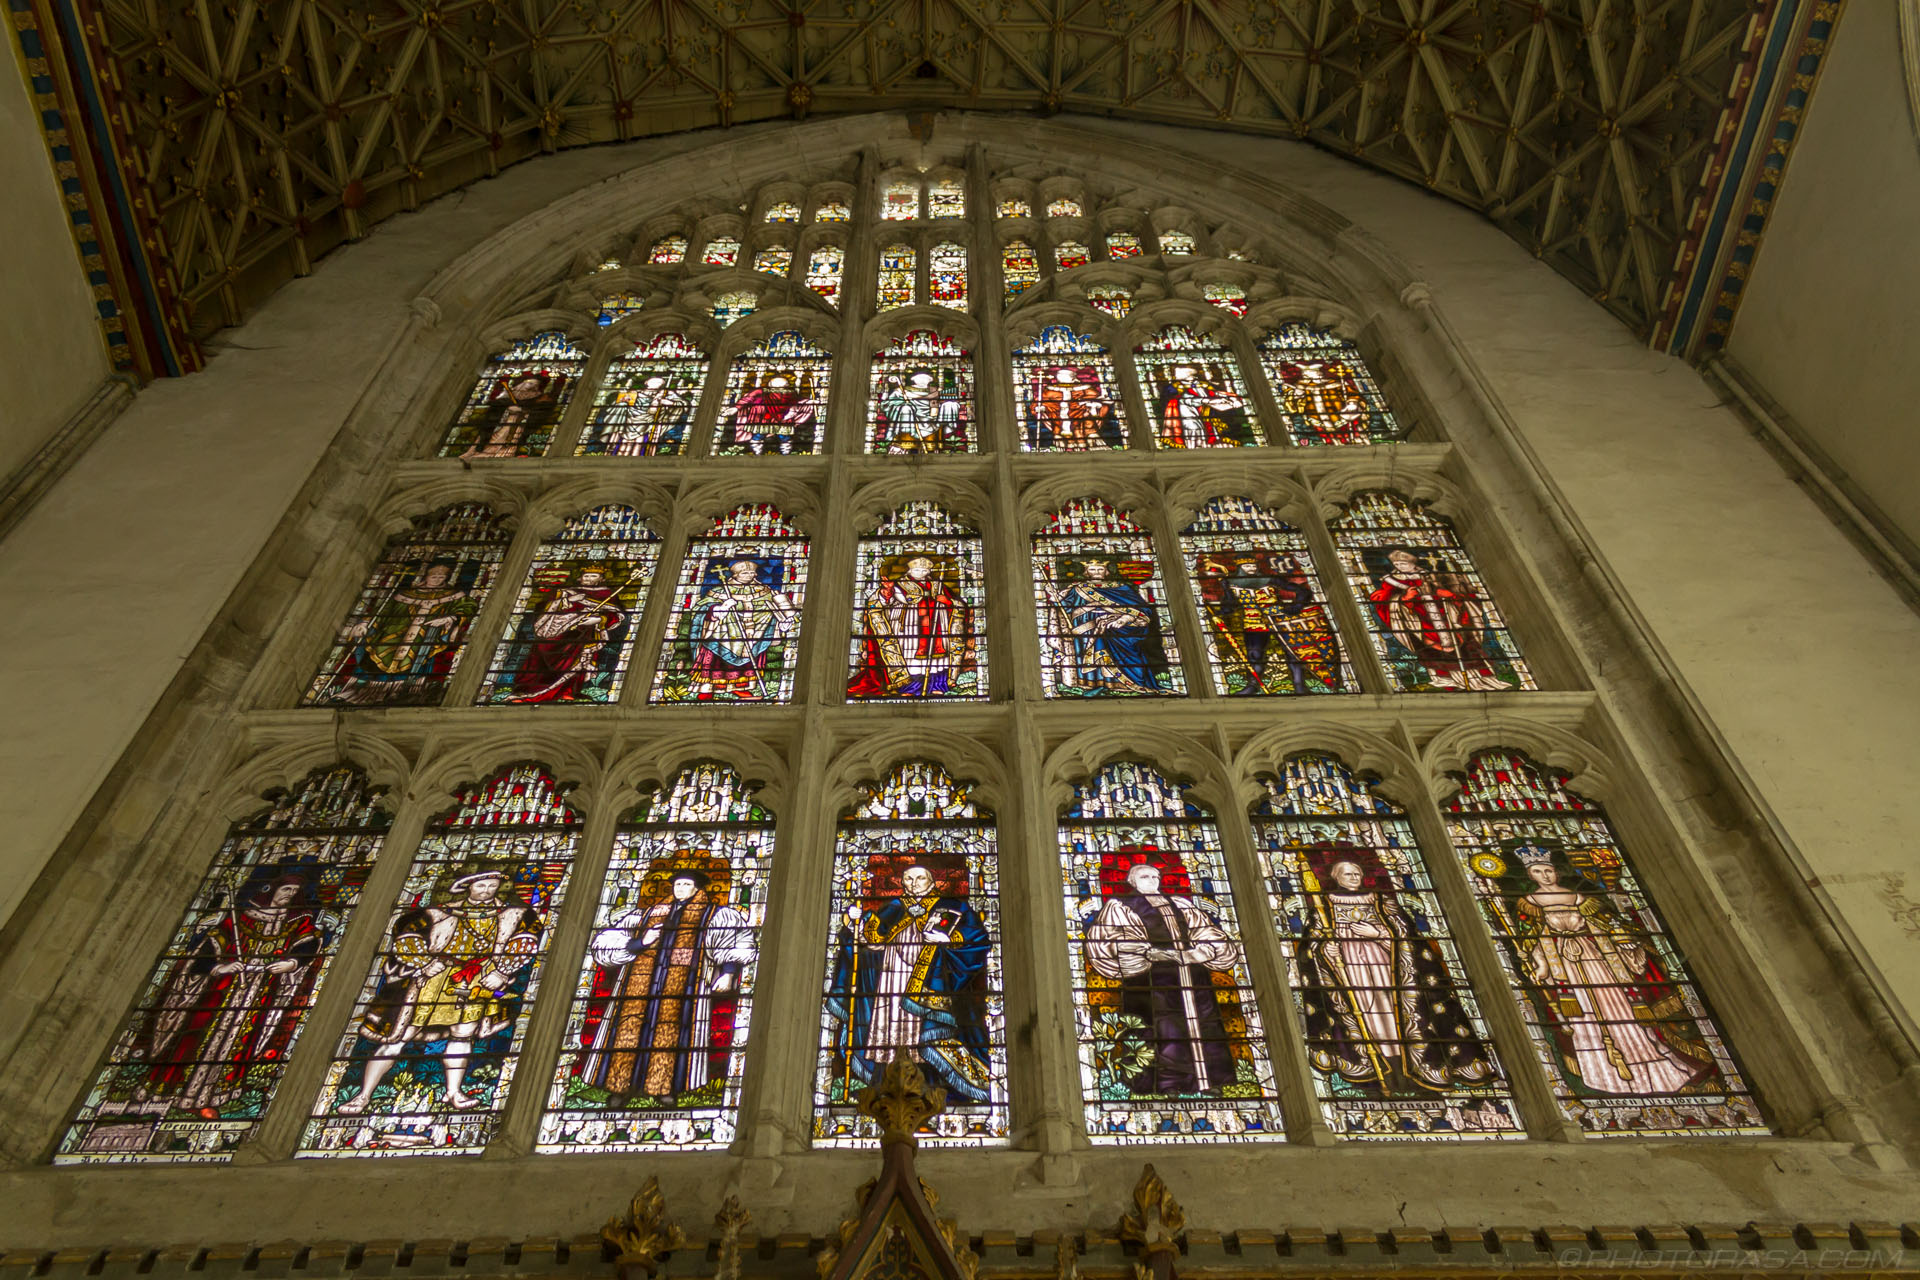 http://photorasa.com/canterbury-cathedral/large-stained-glass-on-east-wall-of-chapter-house/